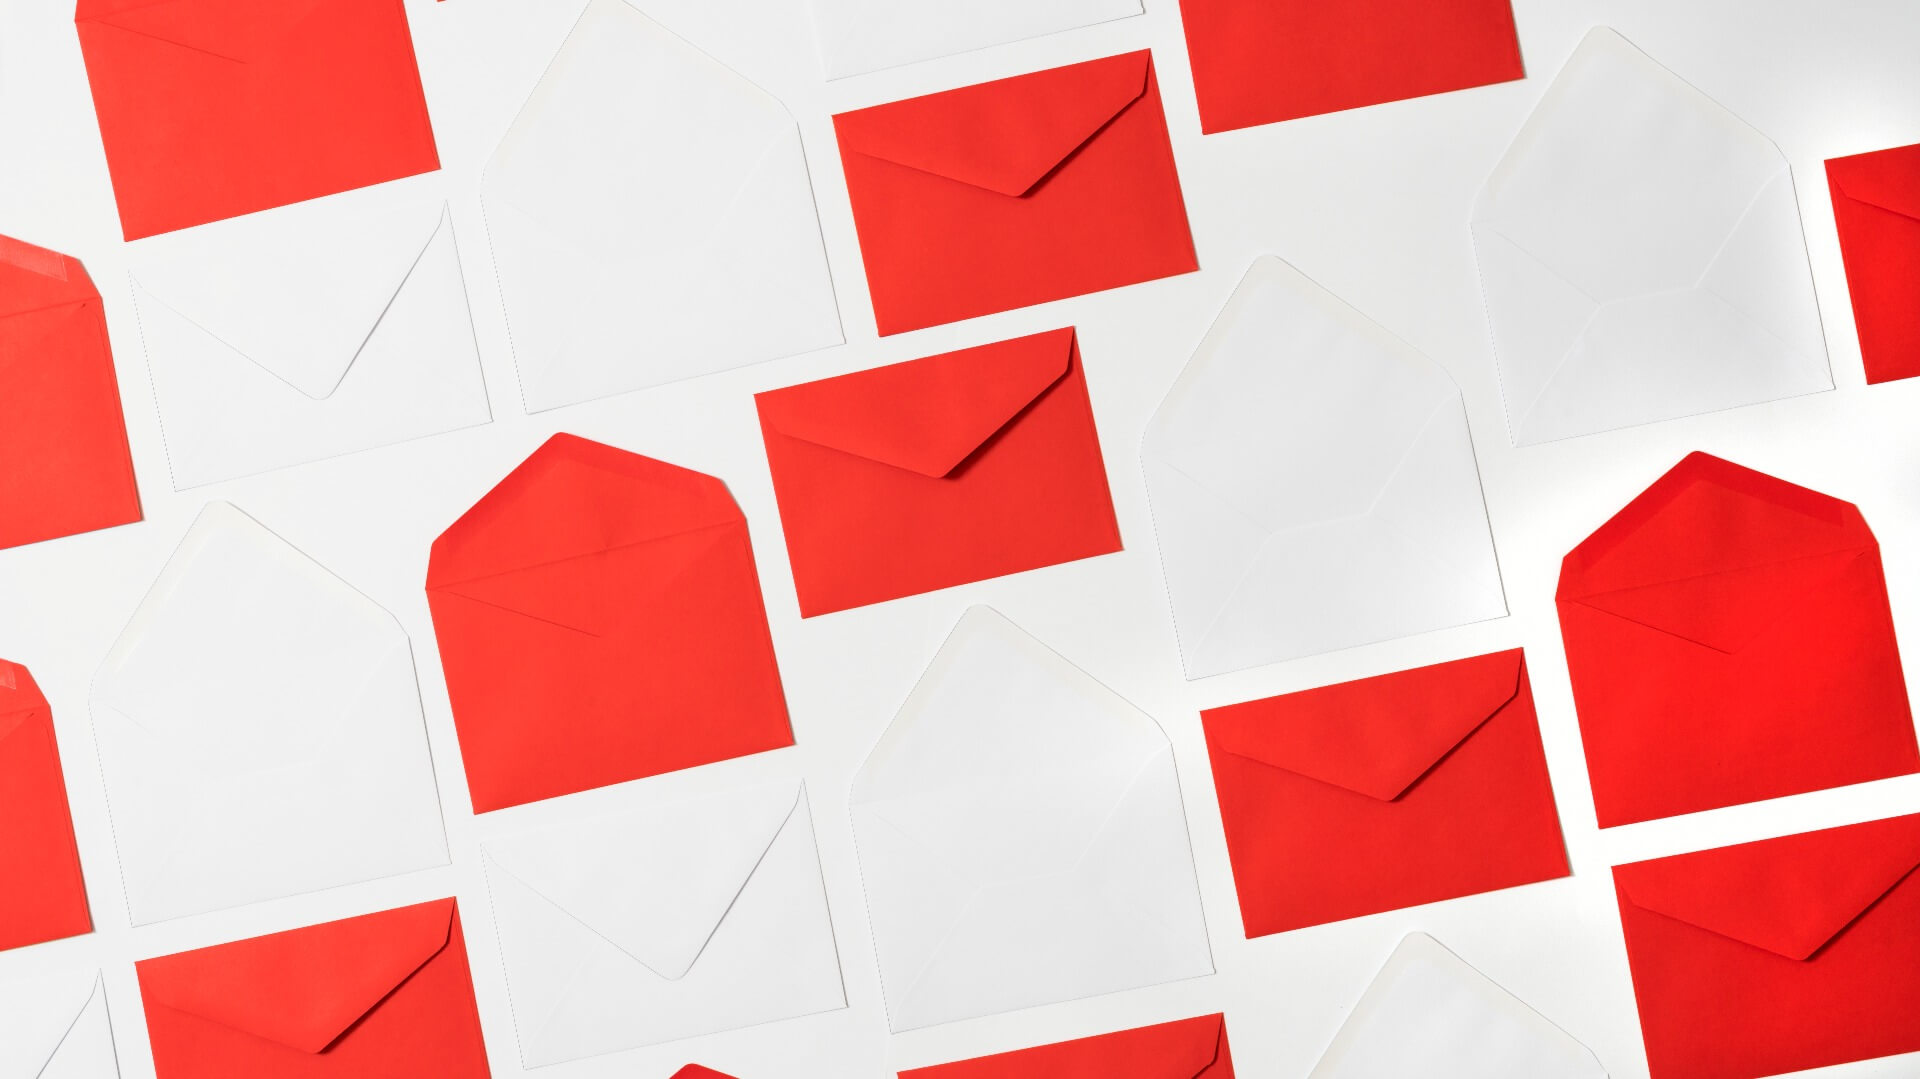 red and white envelopes